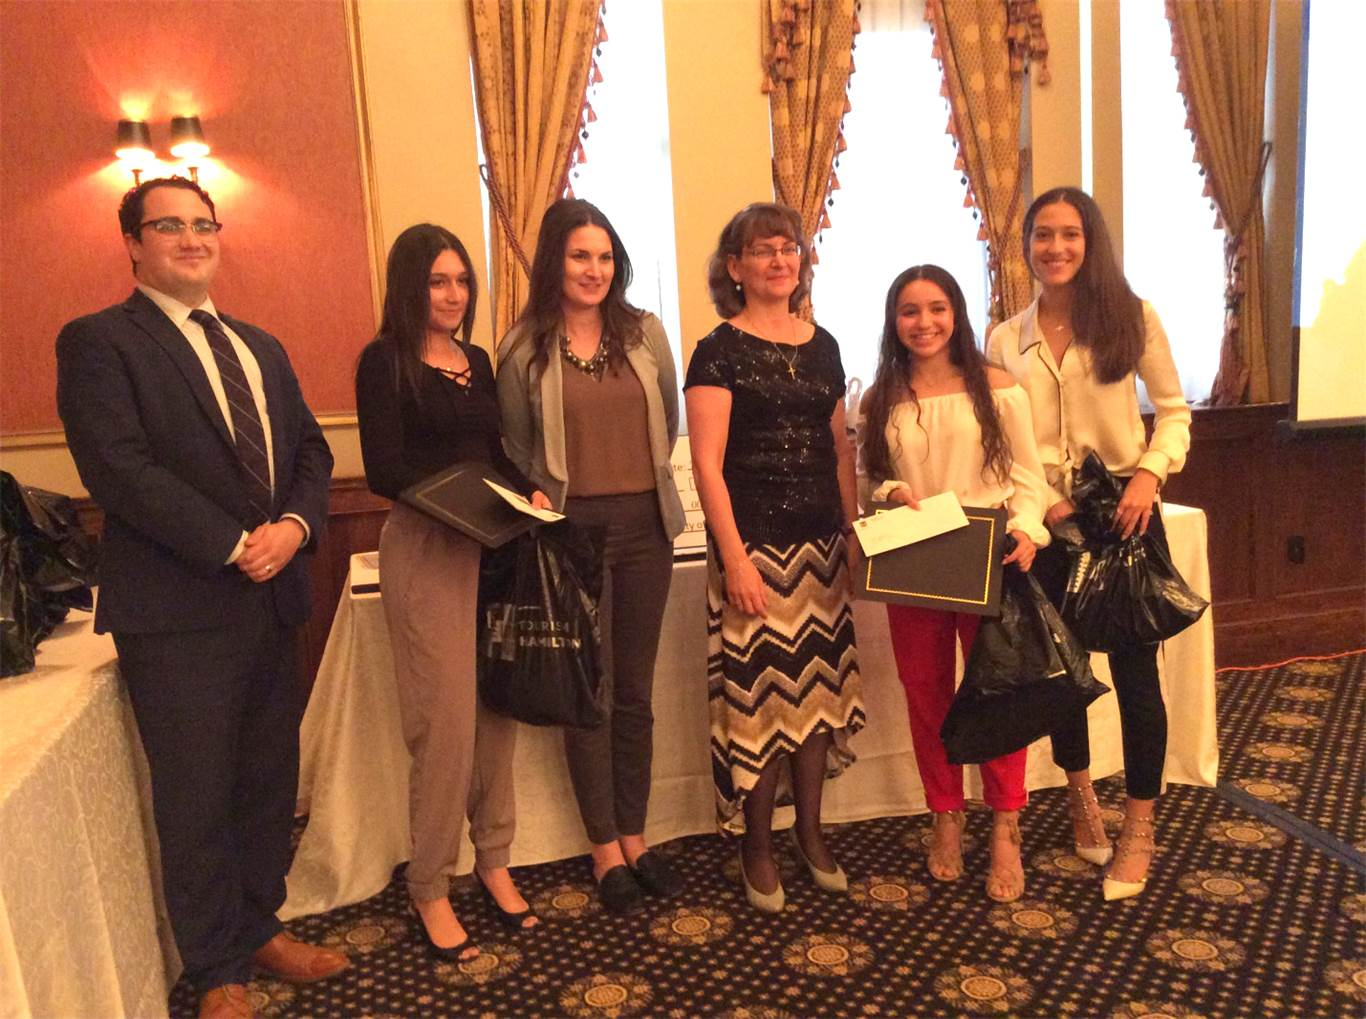 Pictured left to right:  Paul Demarco (from SimpsonWigle LAW LLP and judge for the competition), Isabella Carafano (student), Natalie Reid (from Mohawk College and judge for the competition), Mary Monaco (Sponsor of the Program), Ariana Commisso and Sofia Sergio (students).